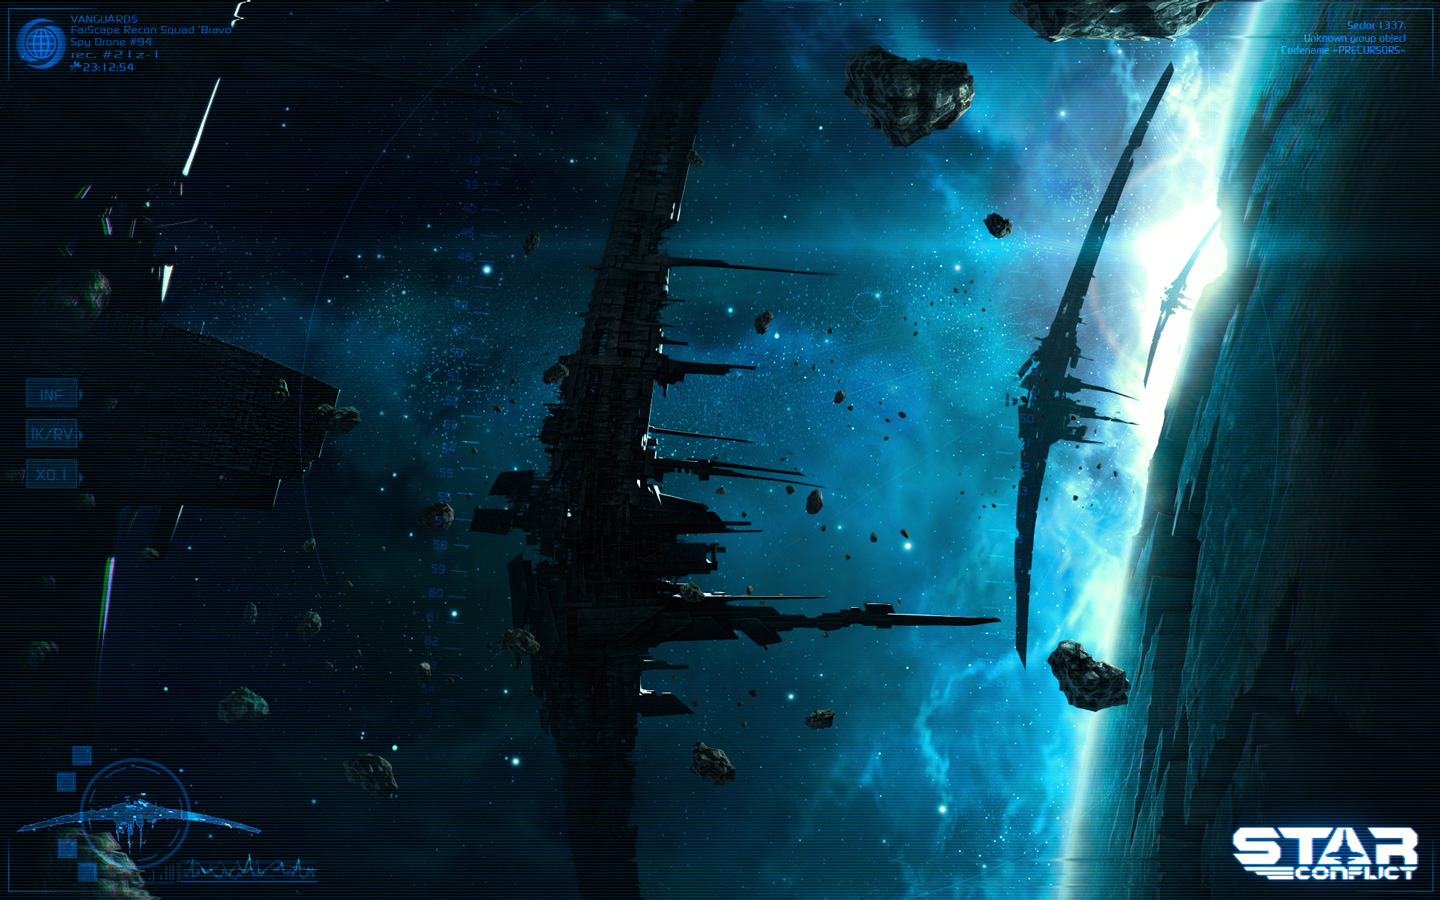 Free Star Conflict Wallpaper in 1440x900